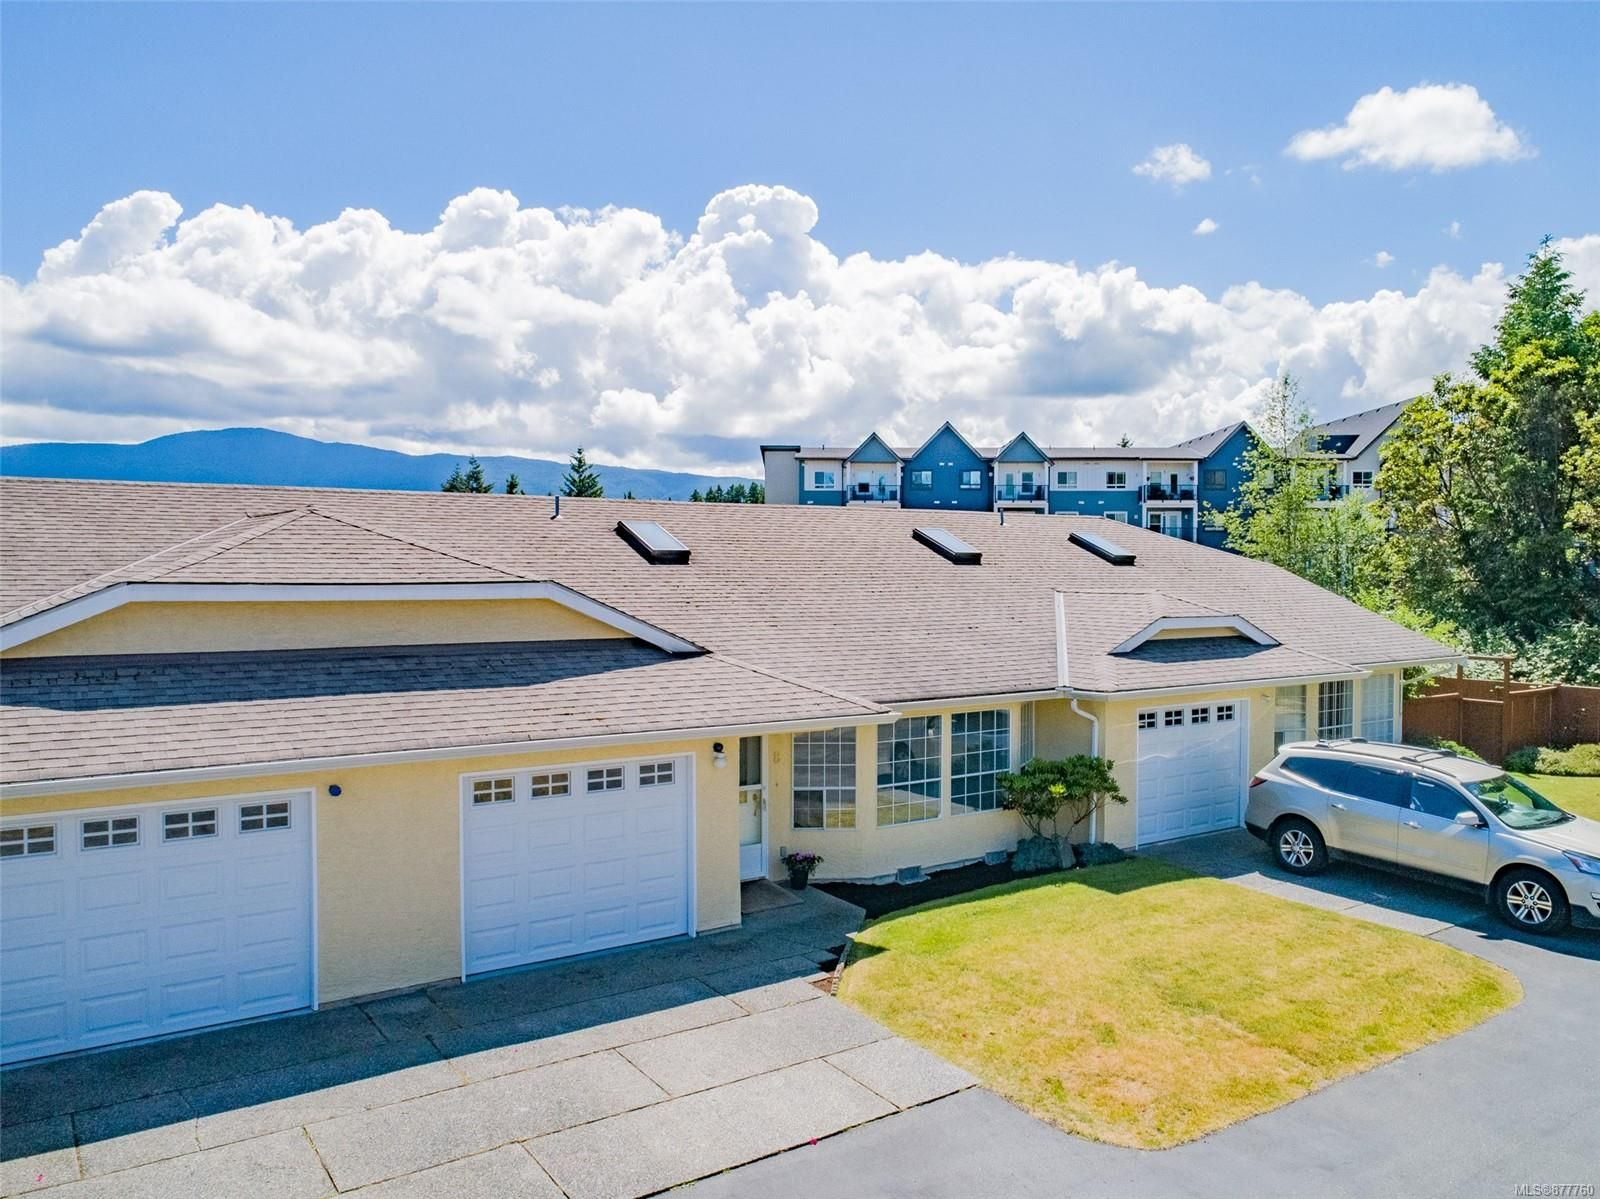 Main Photo: 8 4750 Uplands Dr in : Na Uplands Row/Townhouse for sale (Nanaimo)  : MLS®# 877760